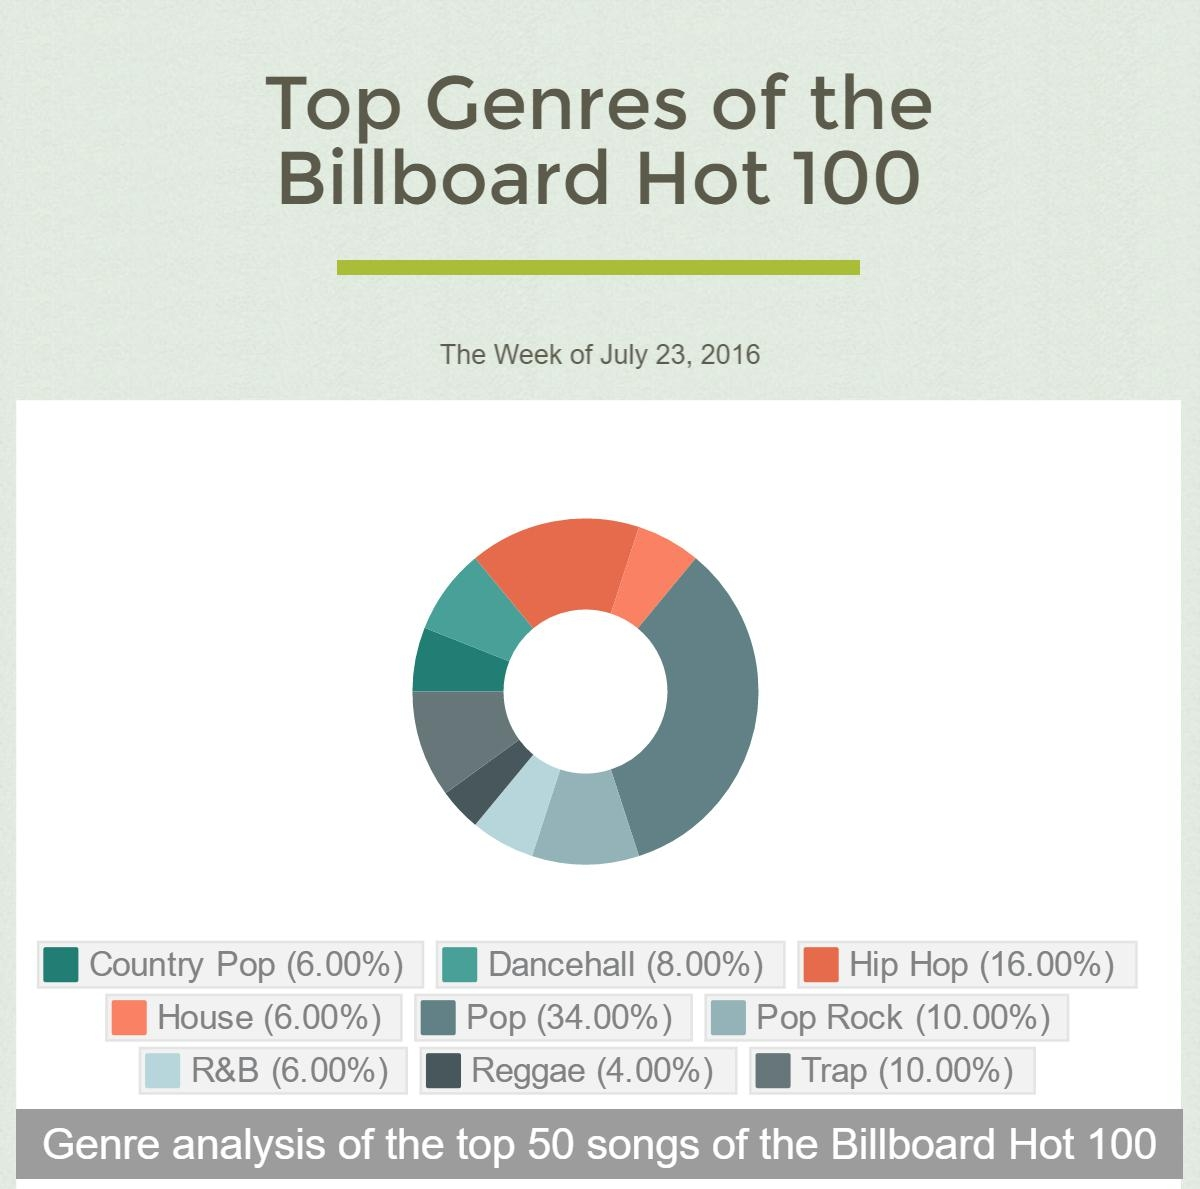 My analysis of the most prevalent music genres on the Billboard Hot 100 this weekshowed that the chart was dominated by pop, hip hop and related genres such as pop rock, country pop and trap. The continued presence of dancehall music on the charts following its incorporation into hits like Rihanna's Work is notable.